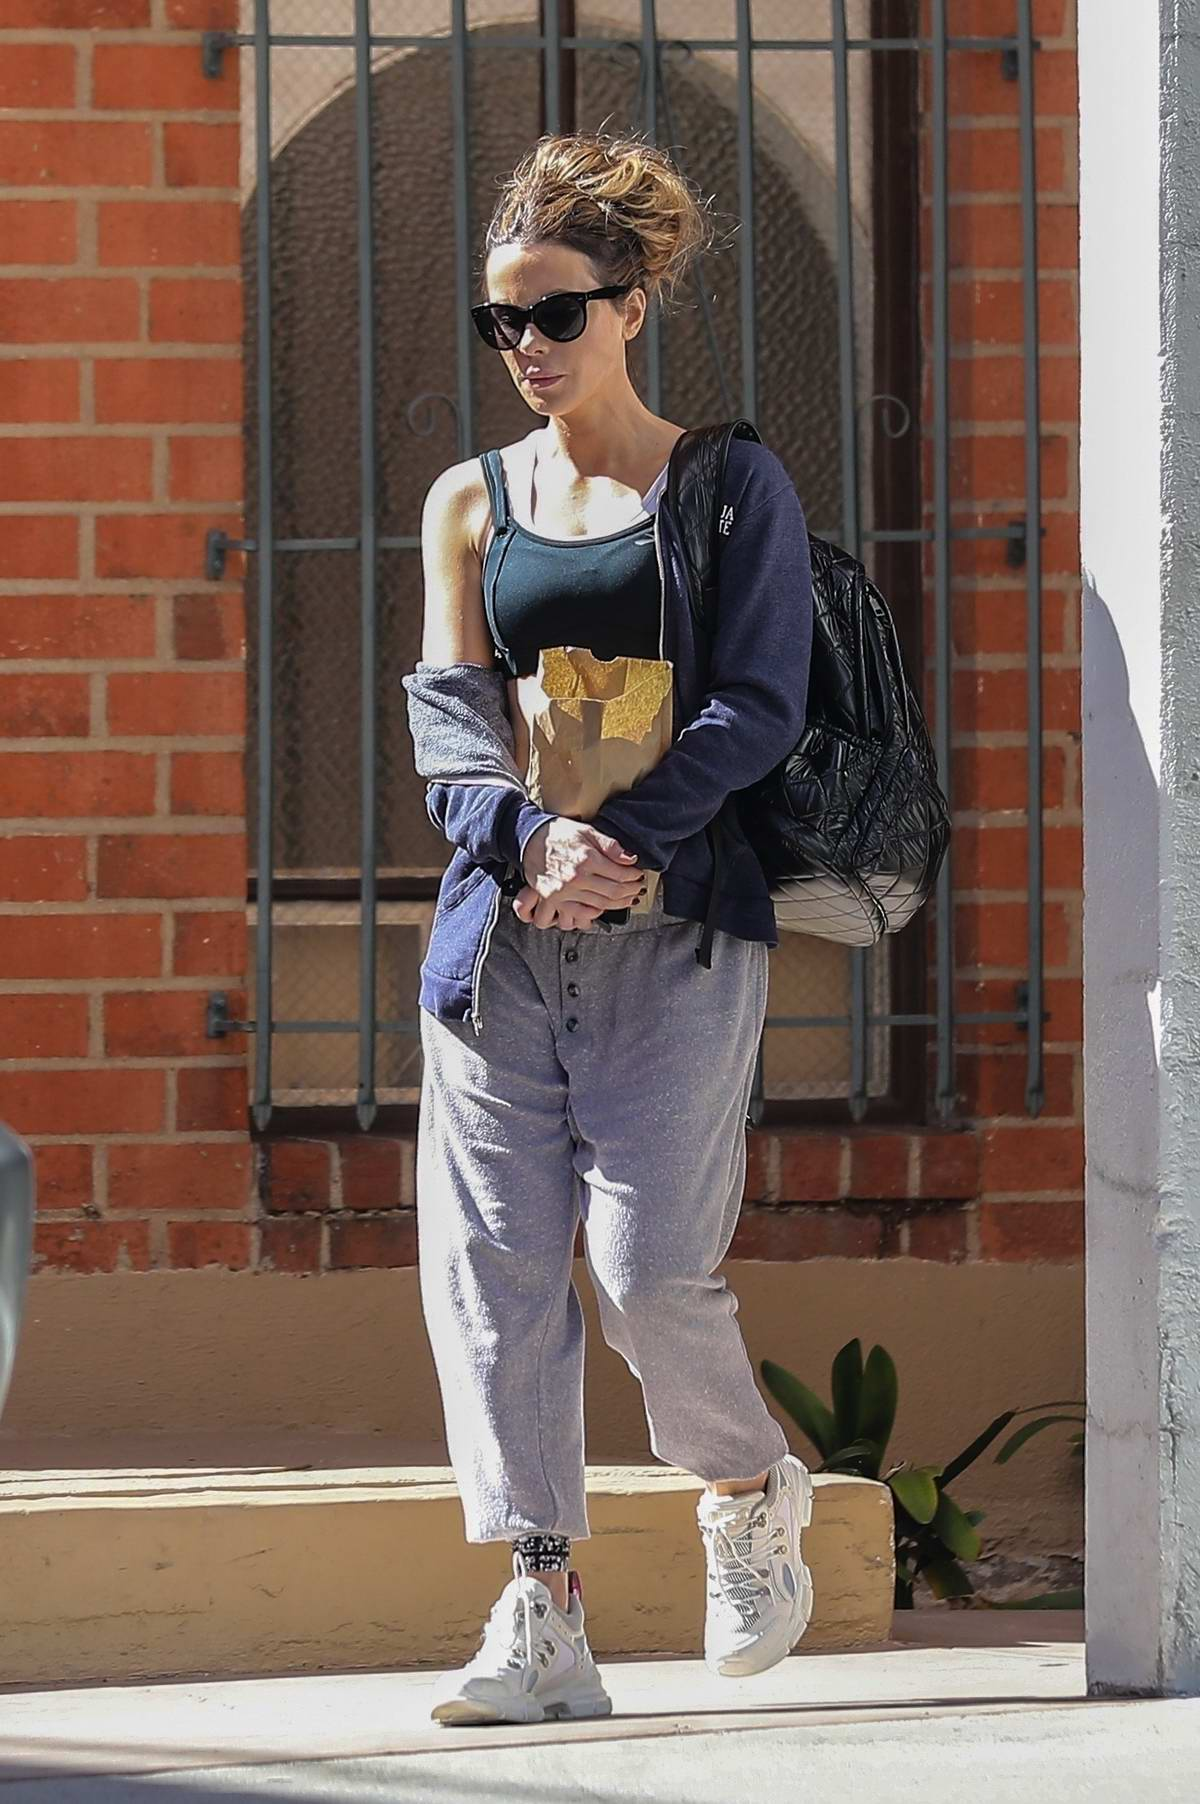 Kate Beckinsale visits a dentist office after her daily workout in Beverly Hills, Los Angeles